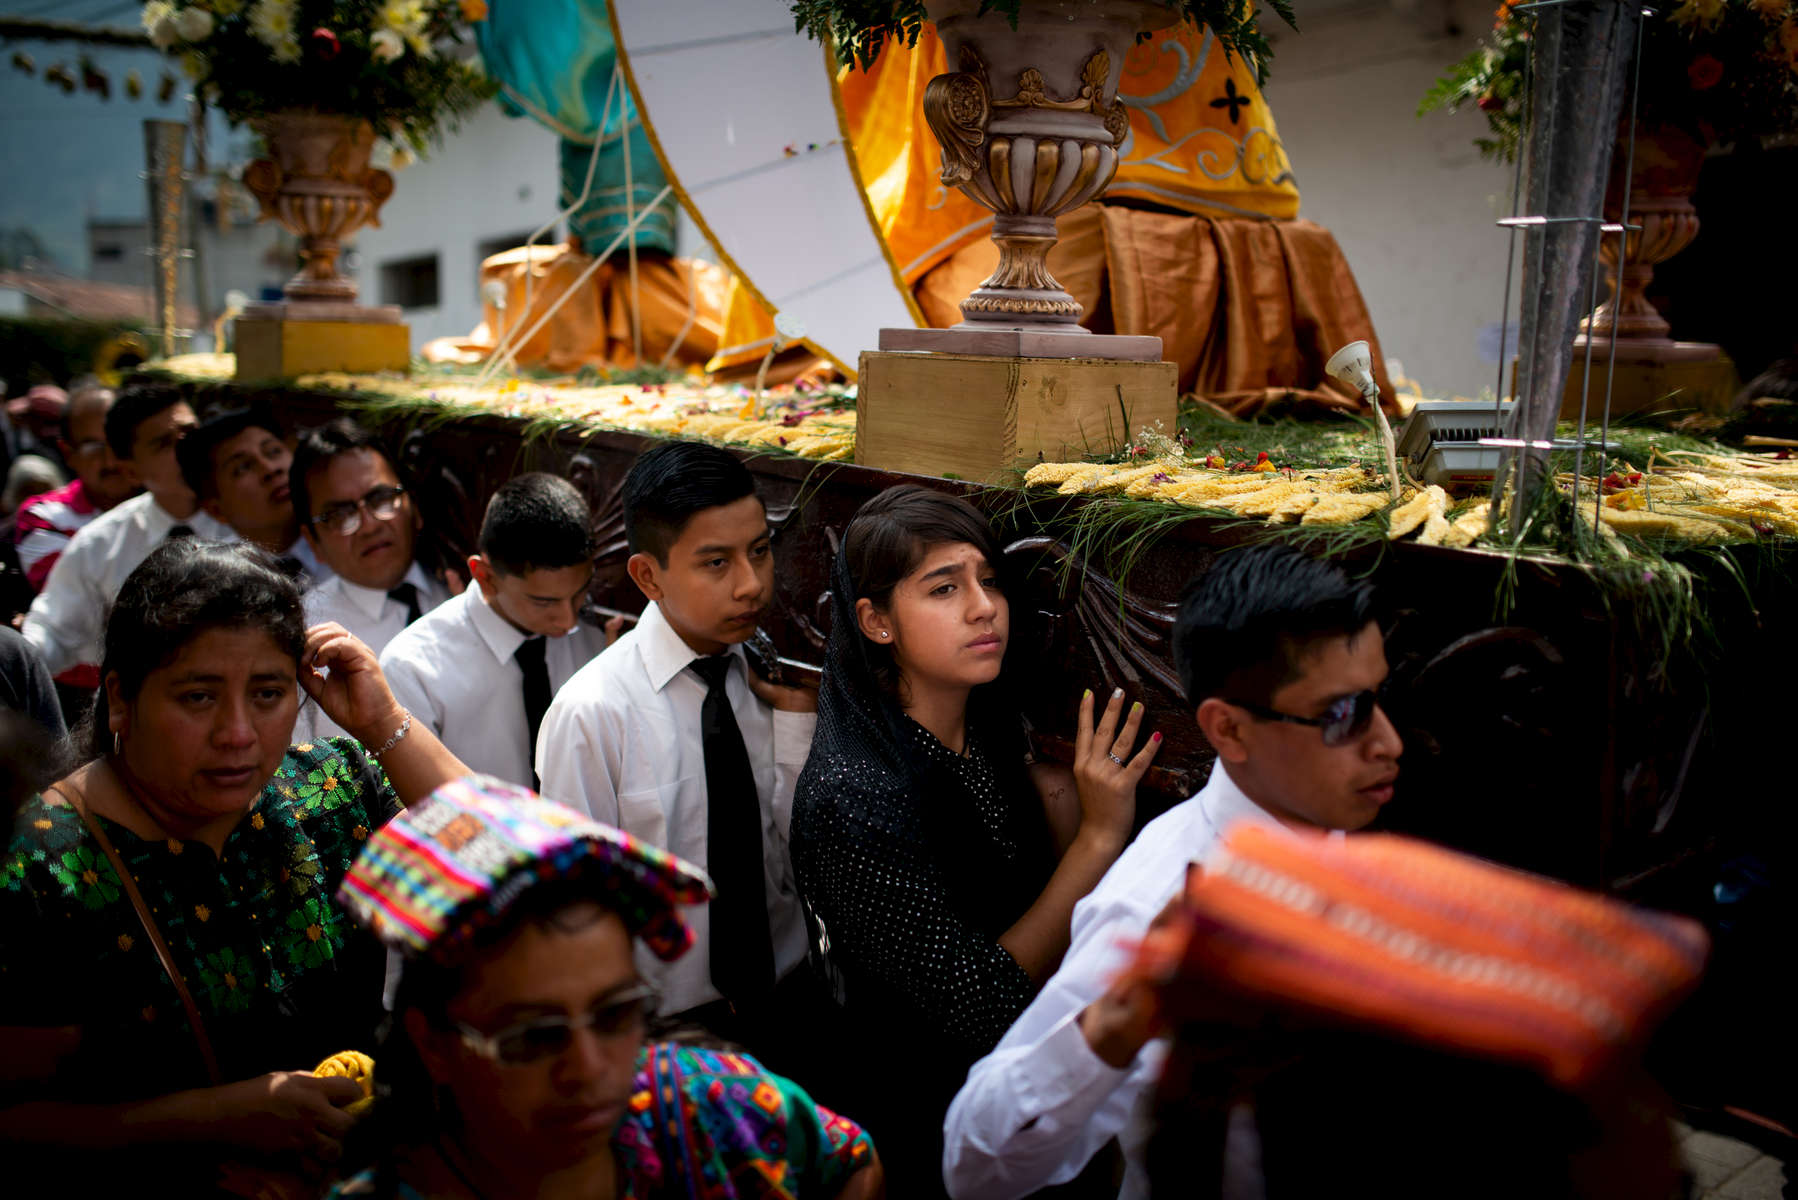 Parishioners carry the anda through the streets of Panajachel, Guatemala.